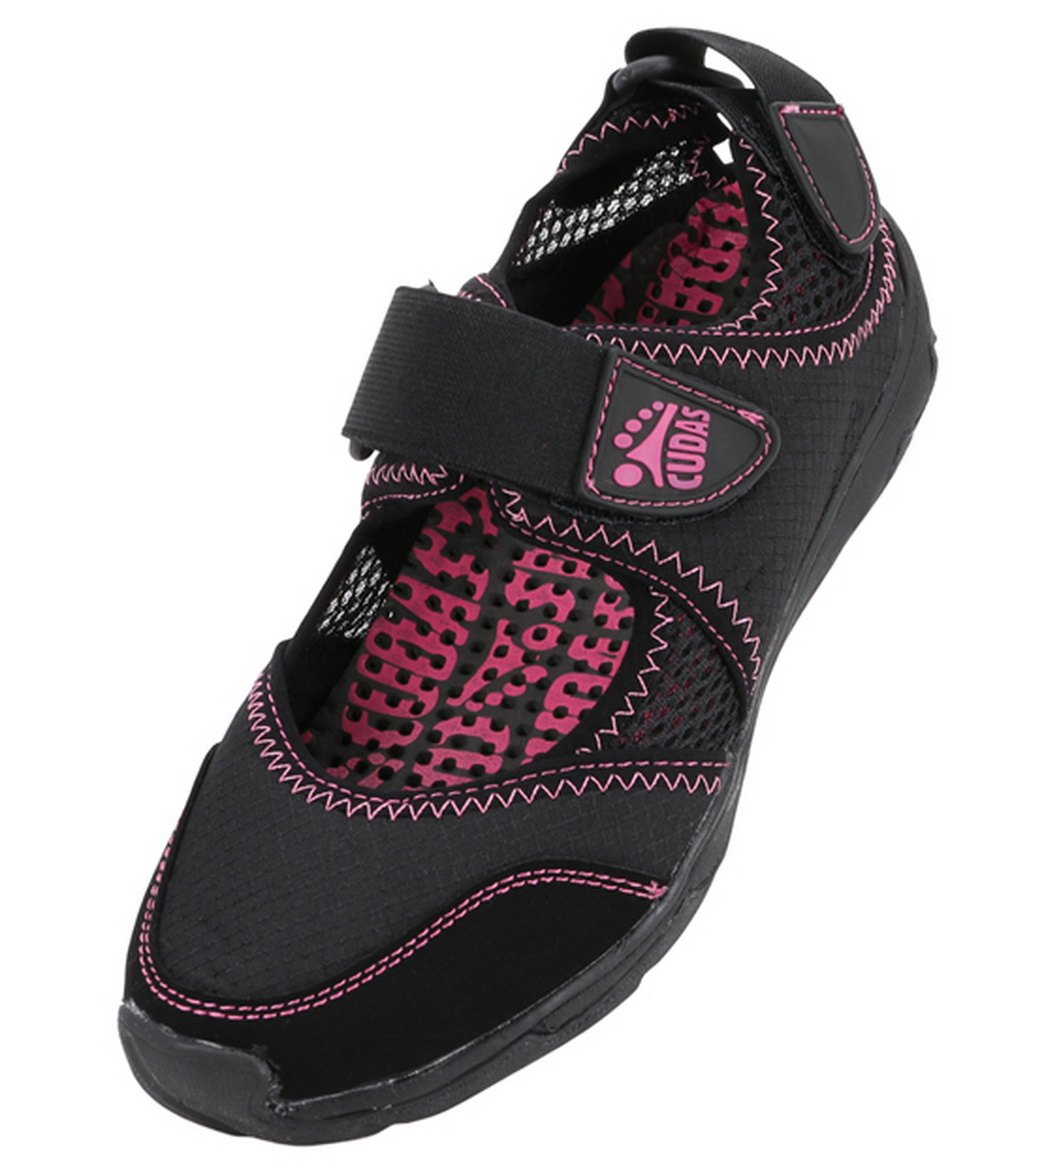 abf6fa3c0799 Cudas Women s Yancey Water Shoes at SwimOutlet.com - Free ...